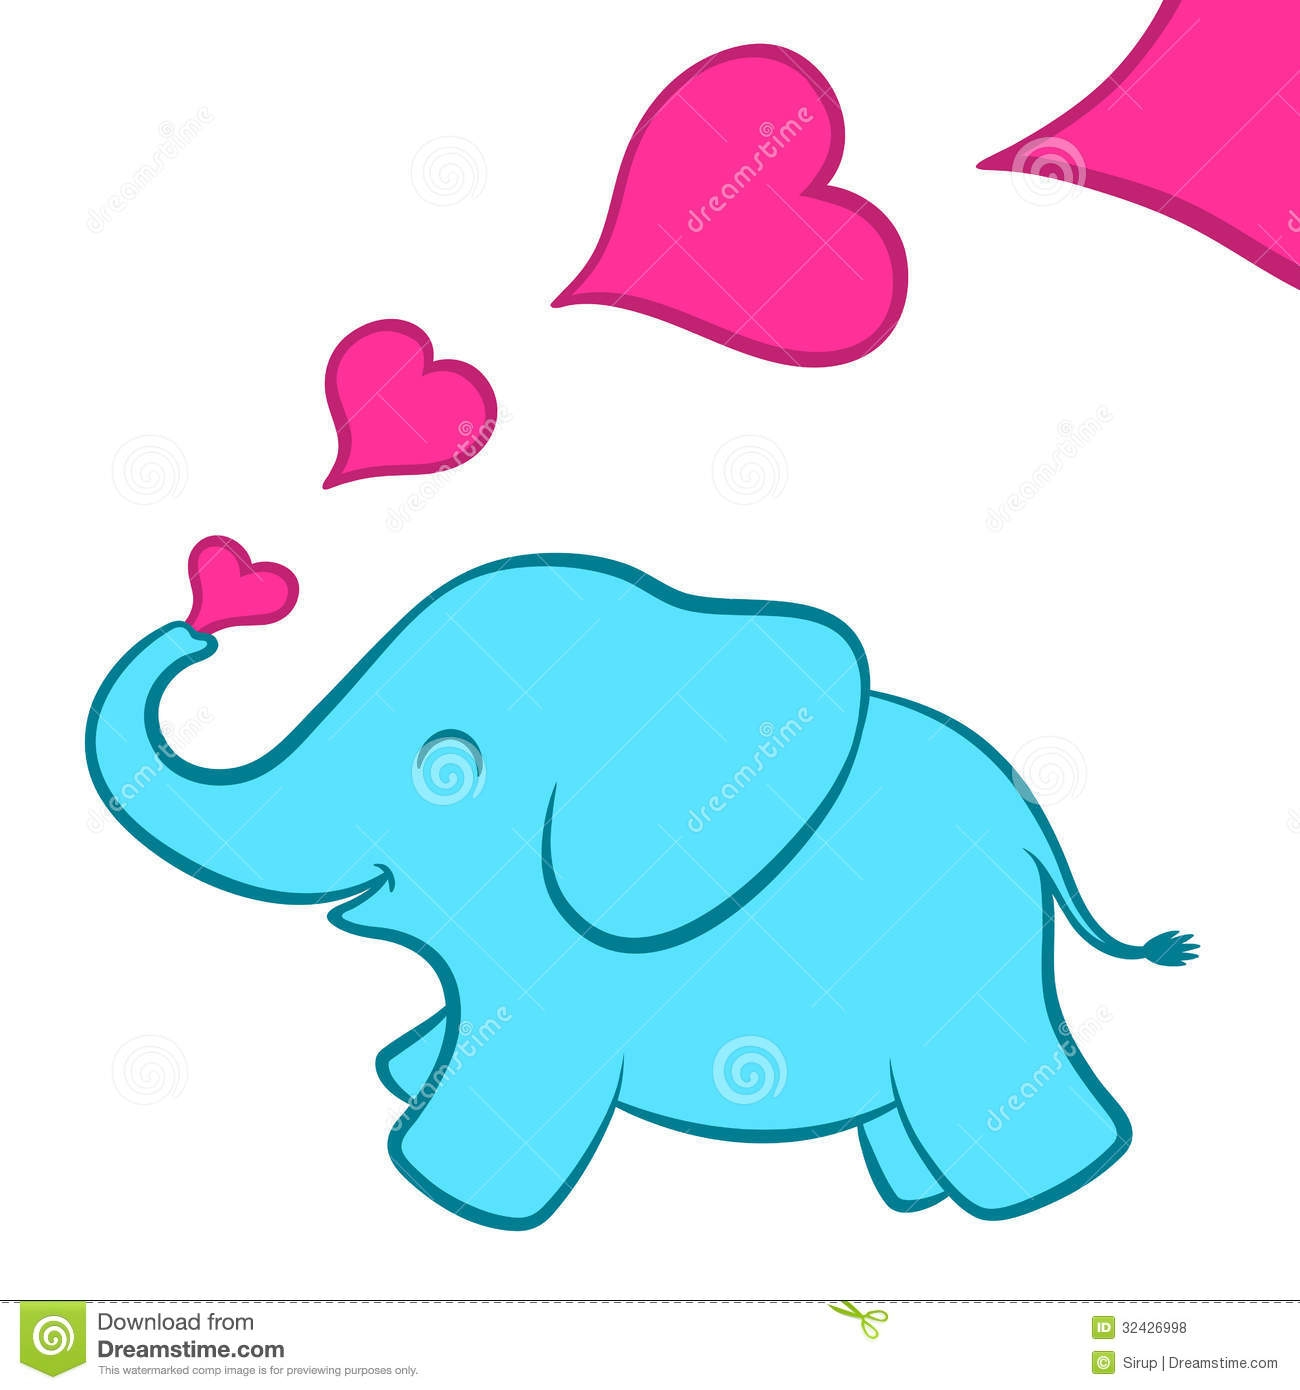 Elephant with hearts clipart clip art freeuse download Elephant with hearts clipart - ClipartFest clip art freeuse download